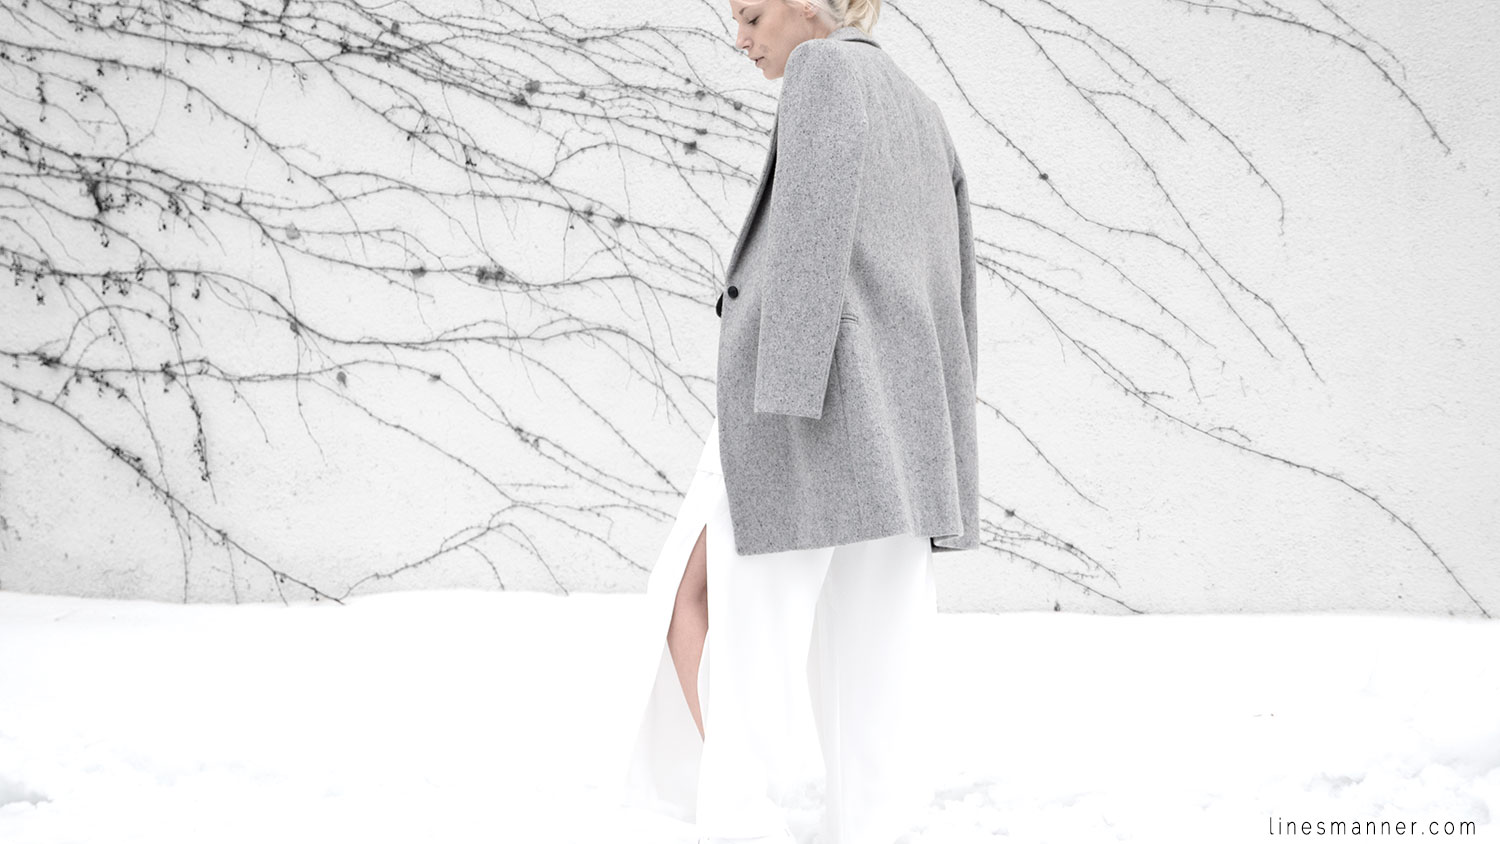 Lines-Manner-White_on_White-All_white-relaxed-shapes-tailored-blazer-pantsuit-clean-details-staples-essentials-sleek-LXE-box bag-light-fresh-slouchy-12